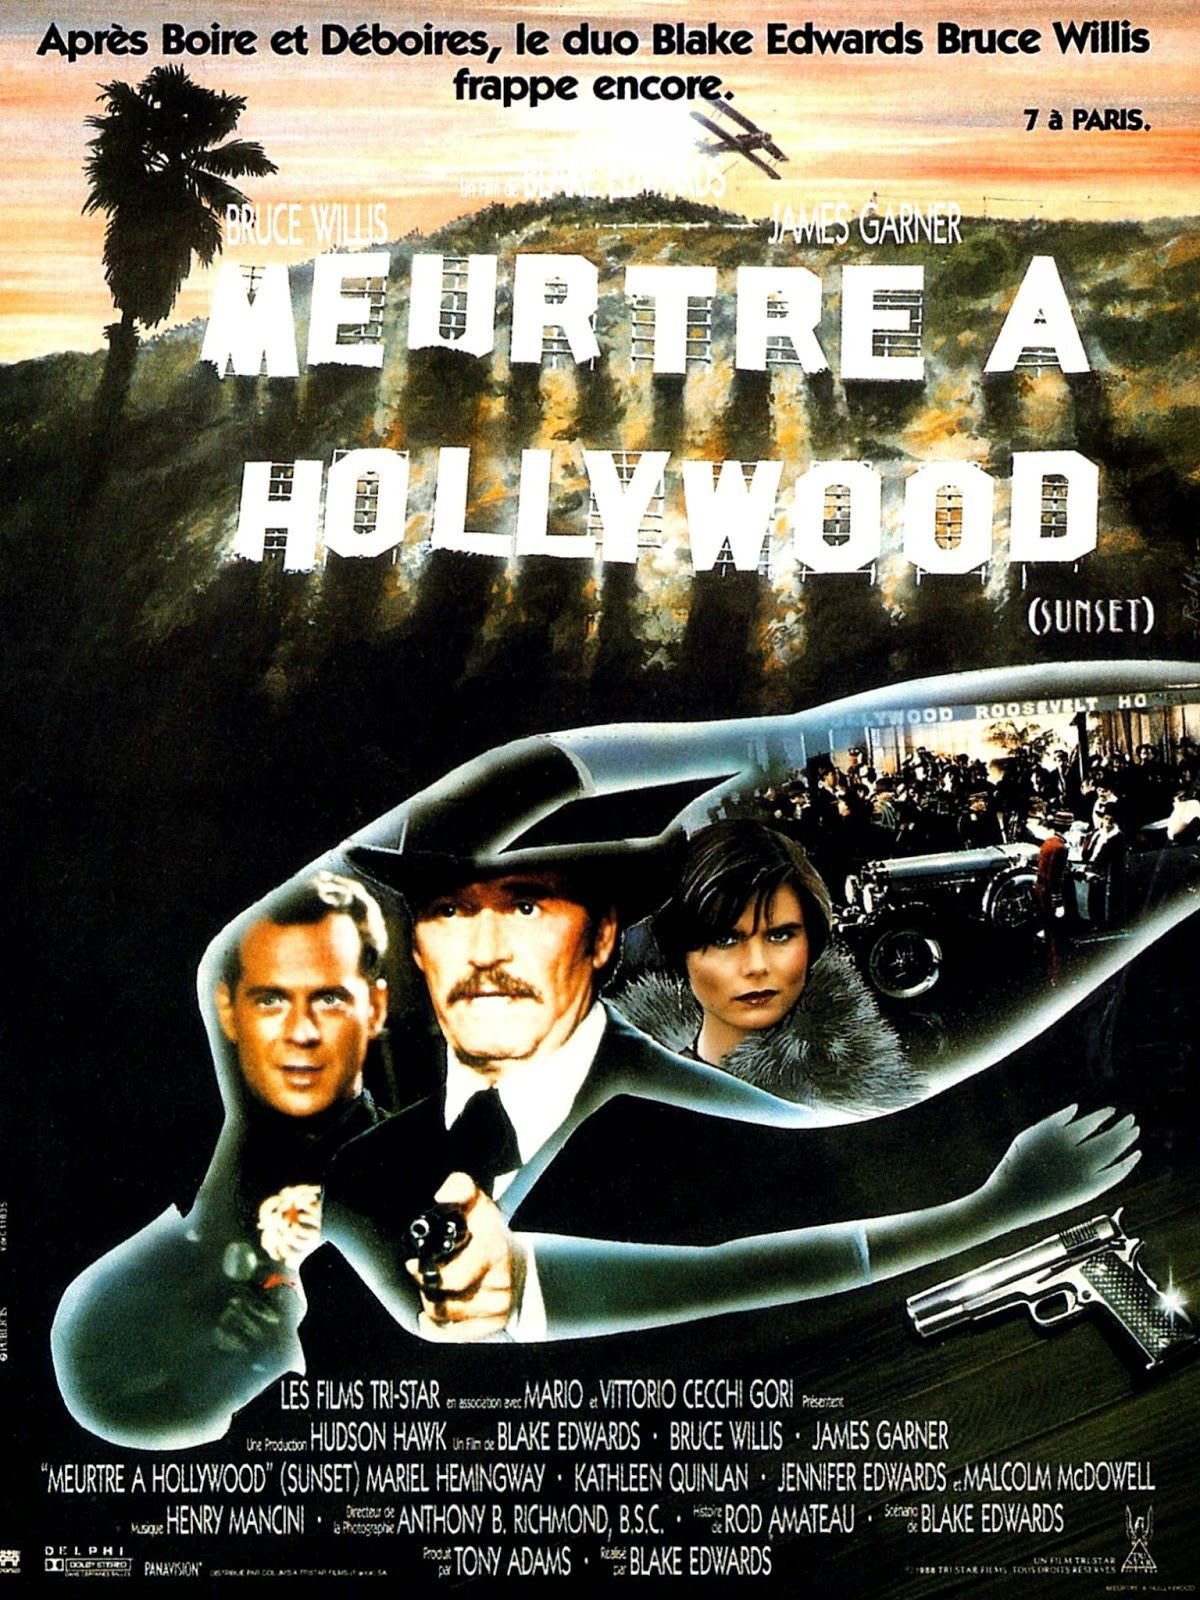 Meurtre à Hollywood - Film (1988) streaming VF gratuit complet